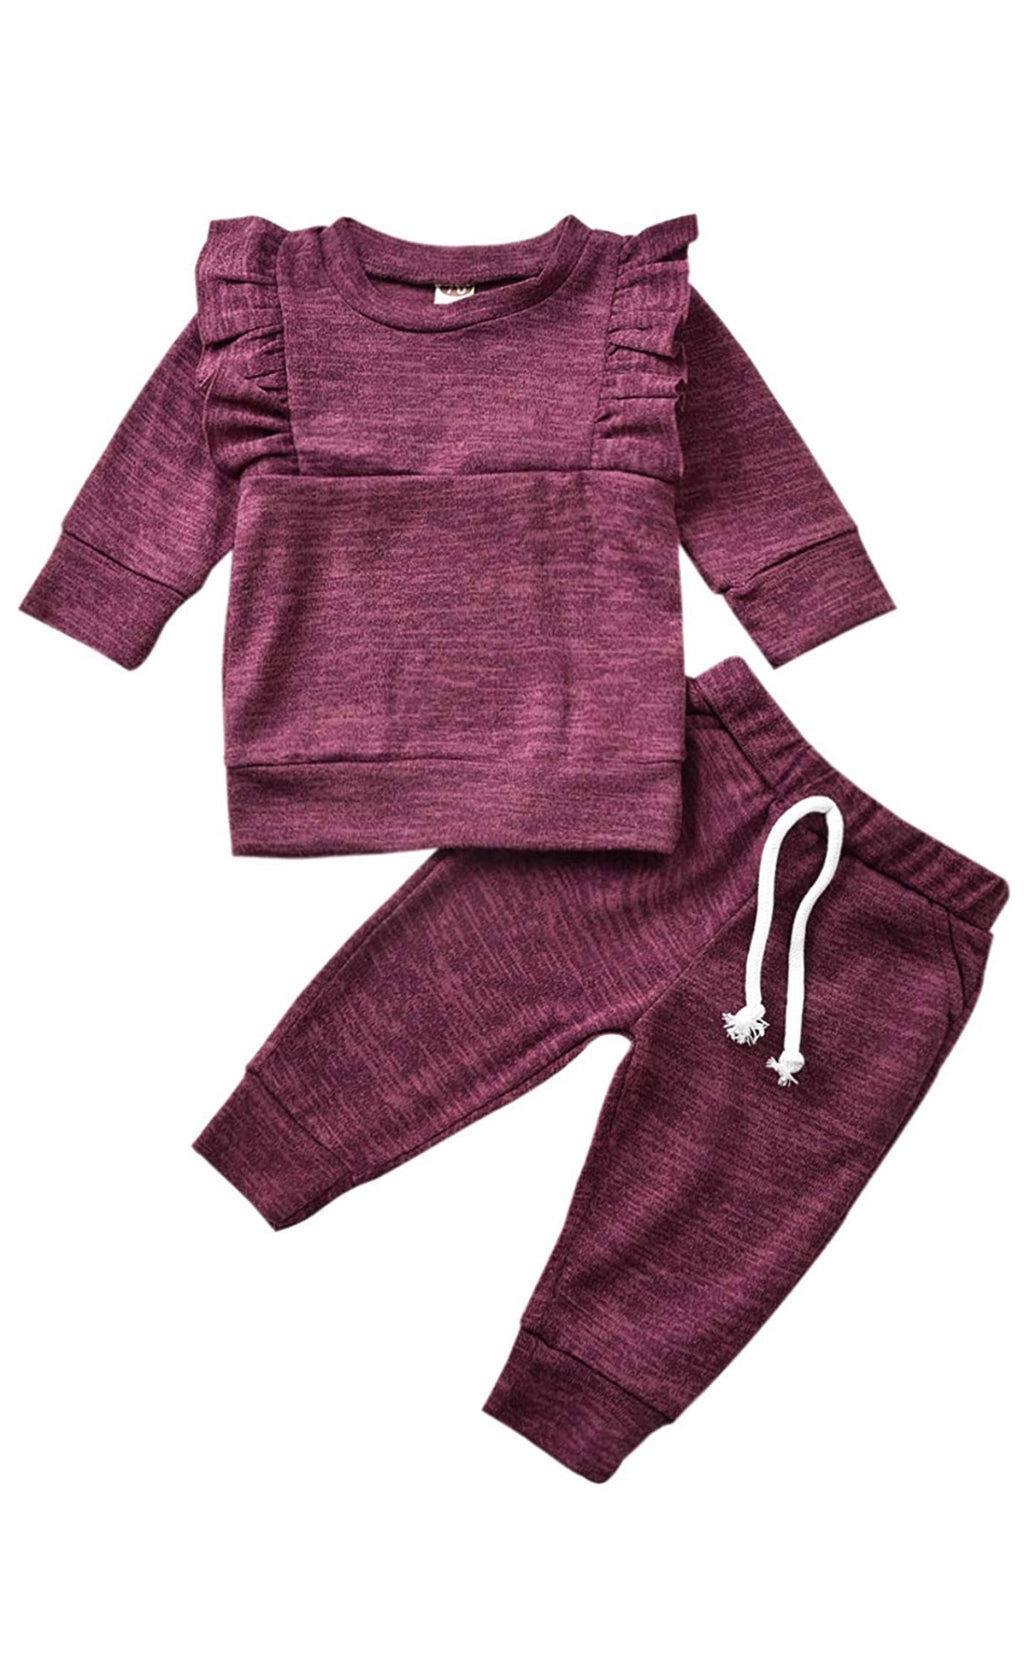 Knit Sweat Suit